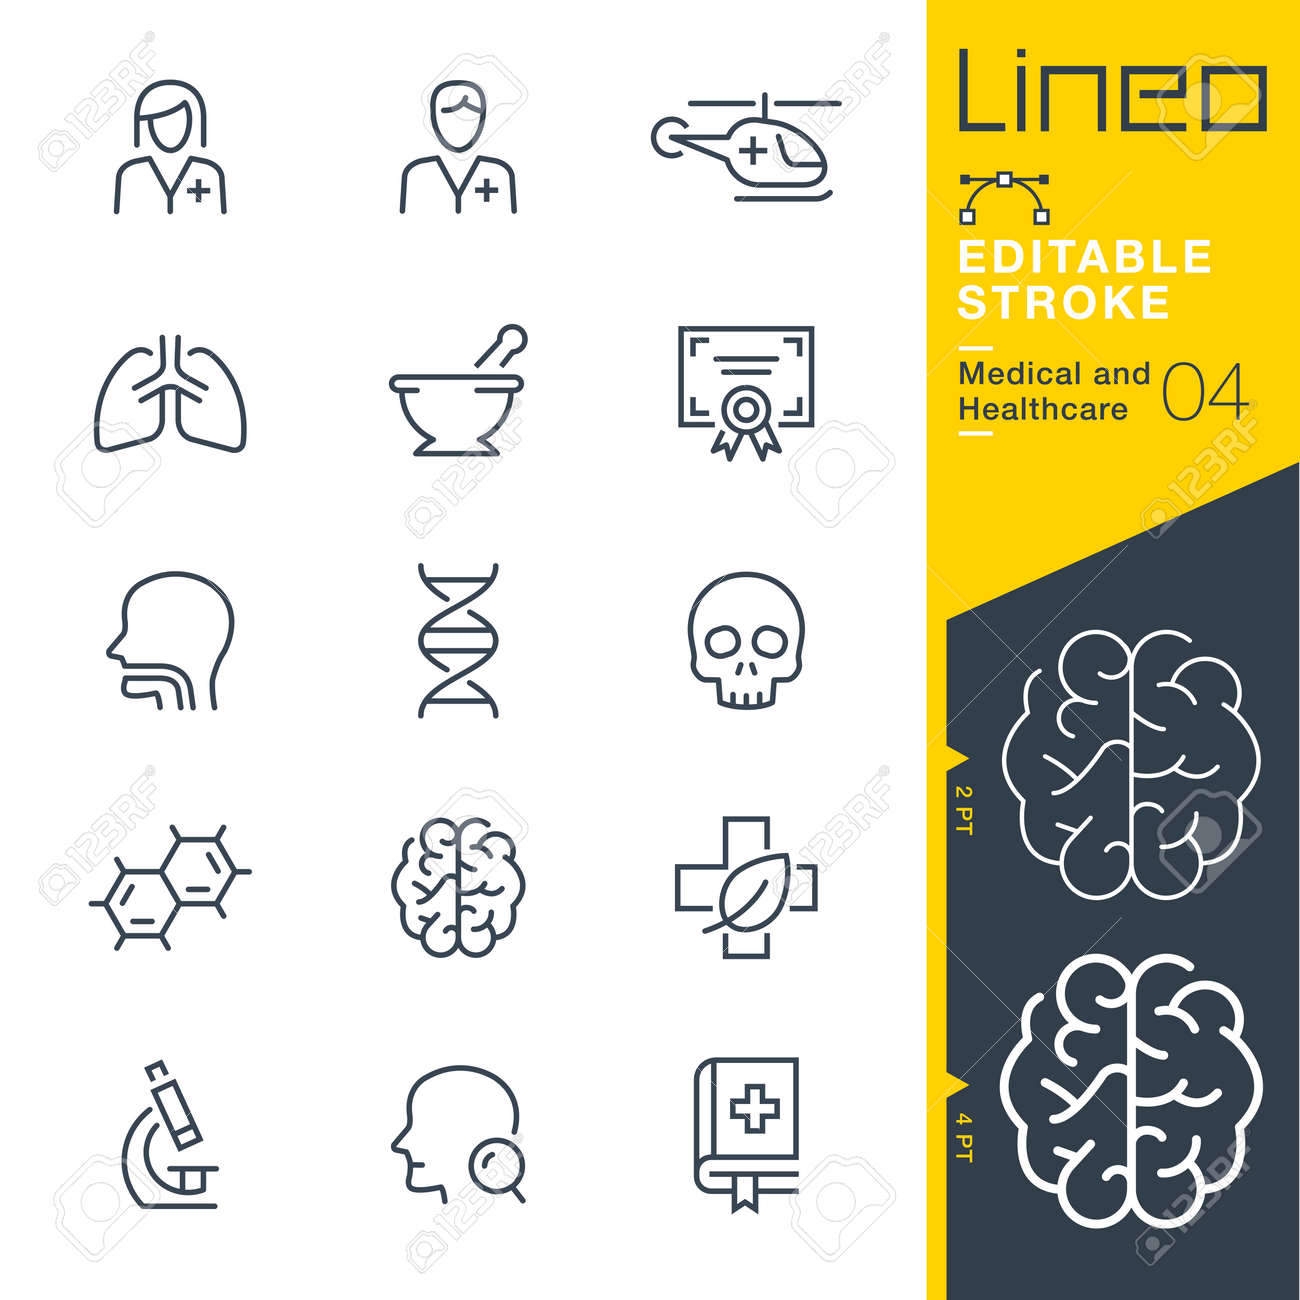 Line Editable Stroke - Medical and Healthcare Line Icons Vector illustration. - 98144311